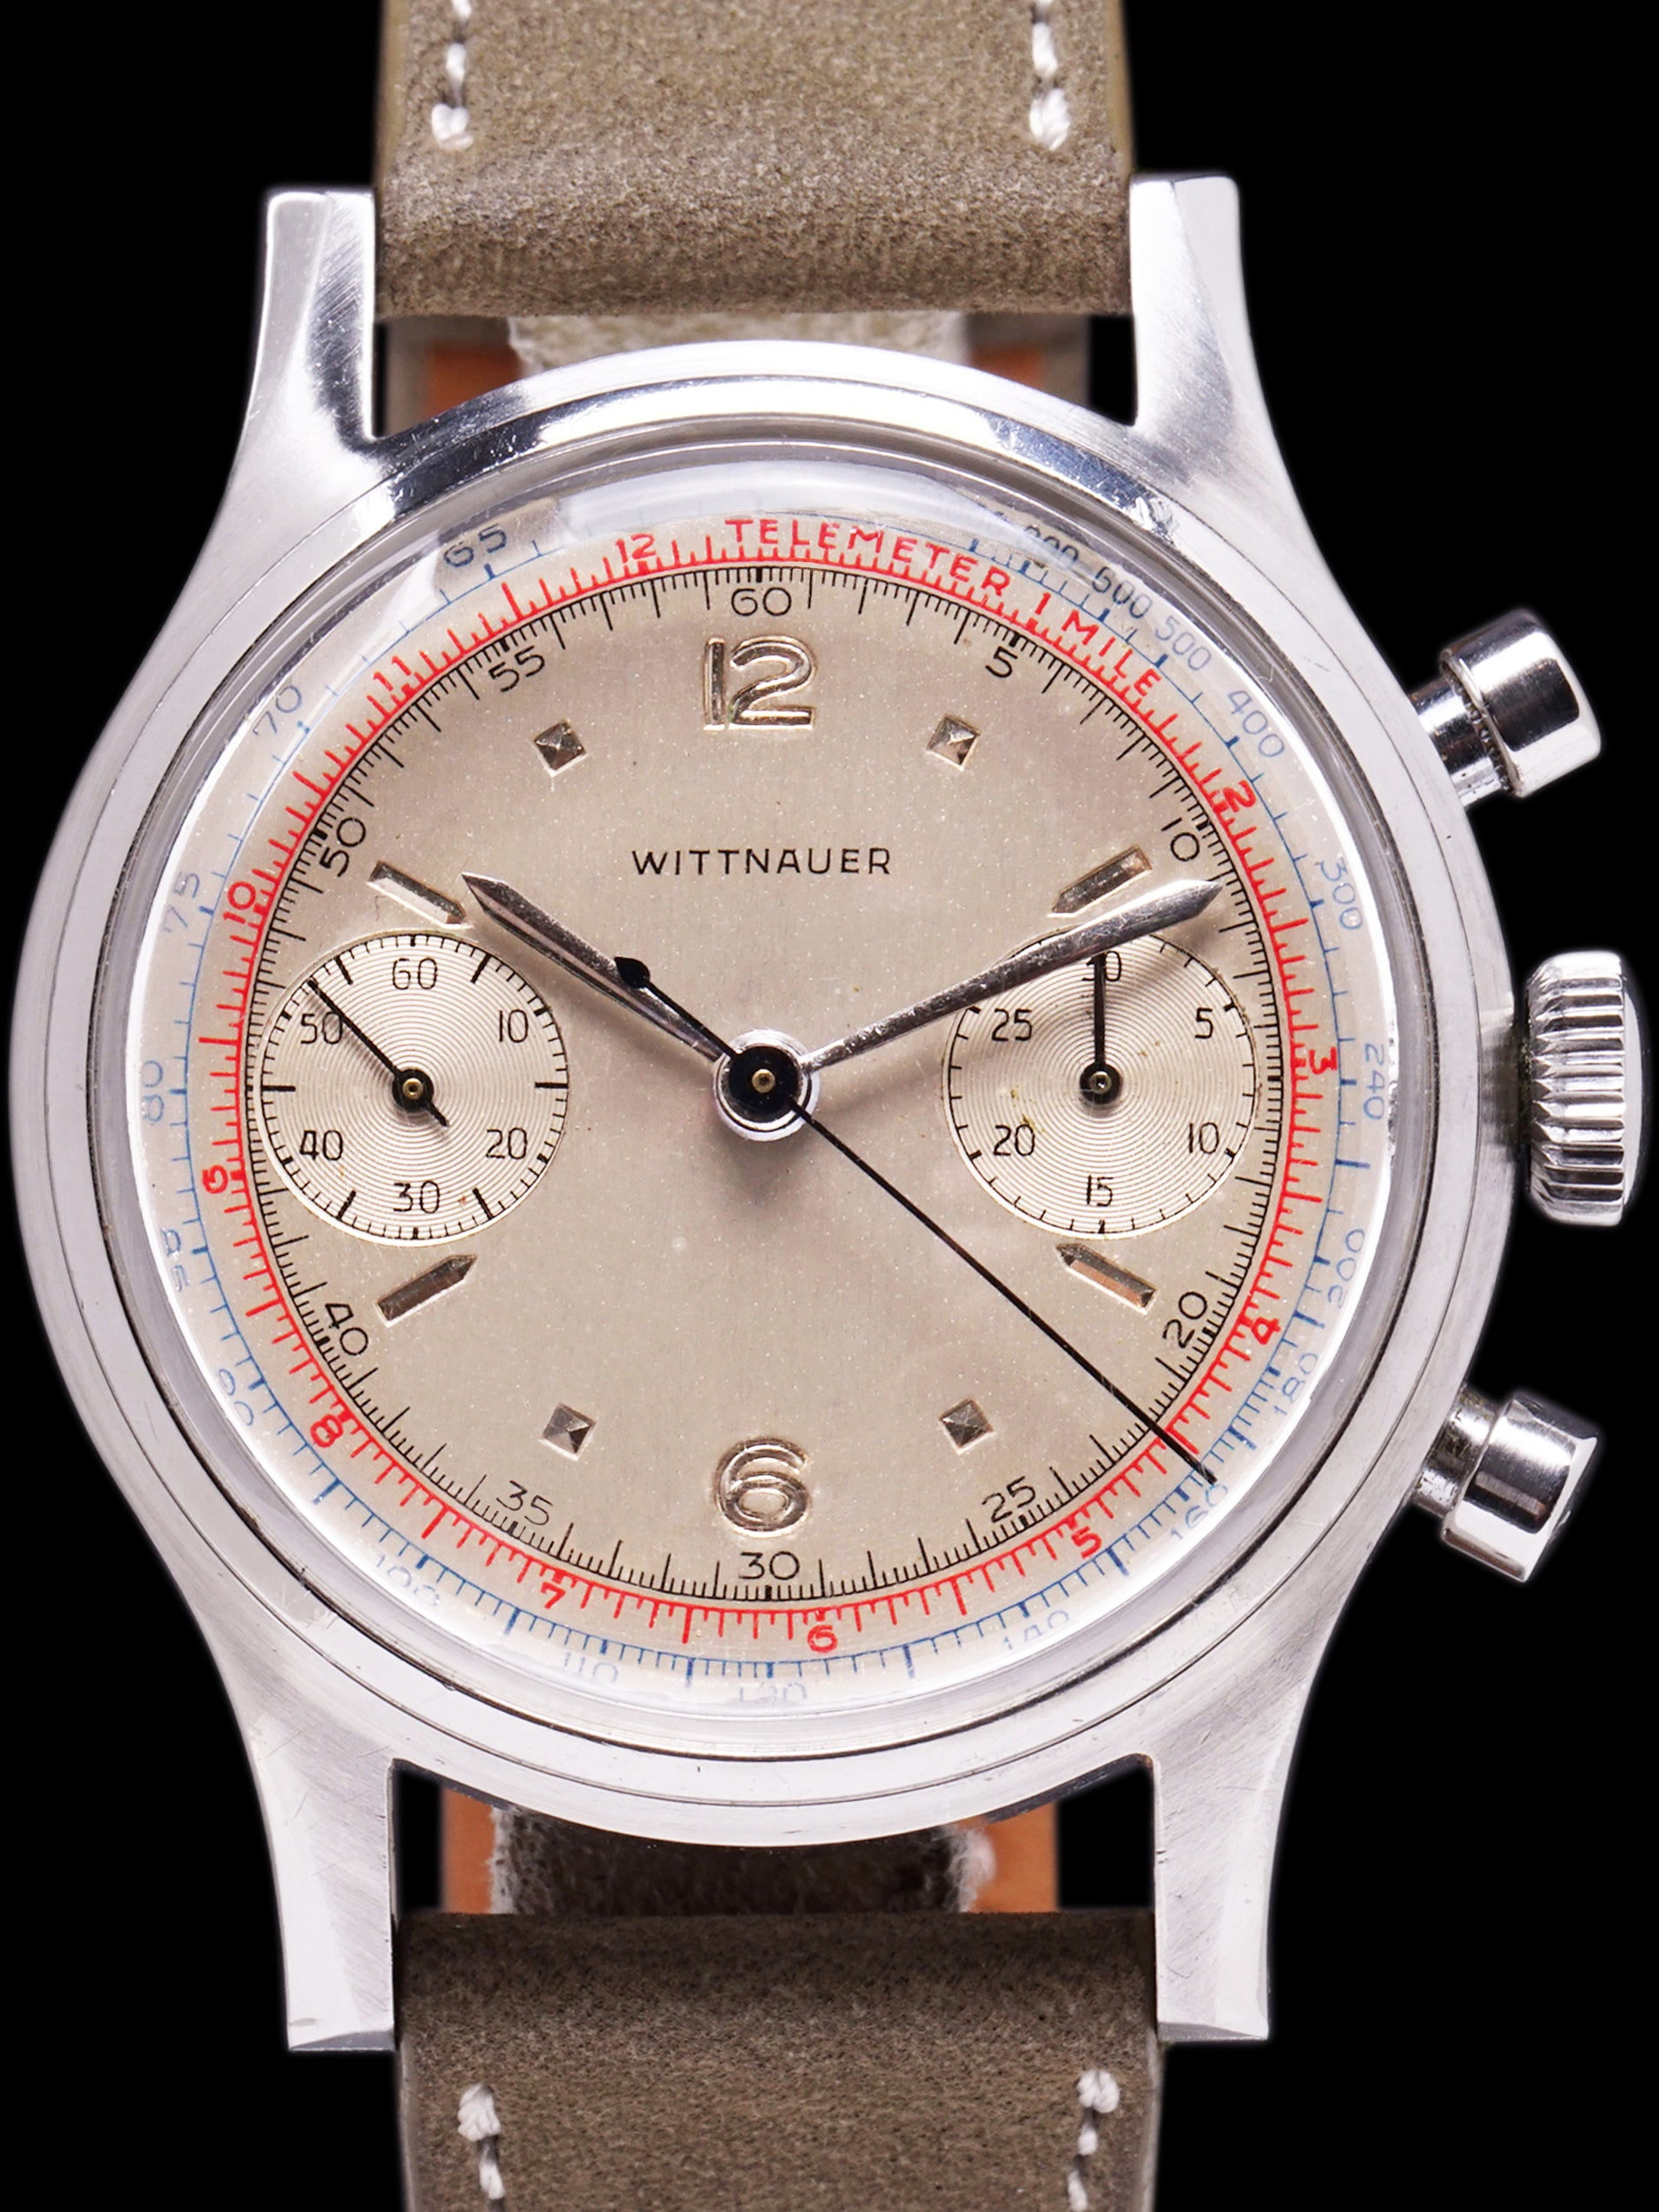 1953 Wittnauer Chronograph (Ref. 3256) Previously Owned by Clint Brawner, Chief Mechanic of the 1953 Indy 500 Winning Pole Car, Driven by Bill Vukovich